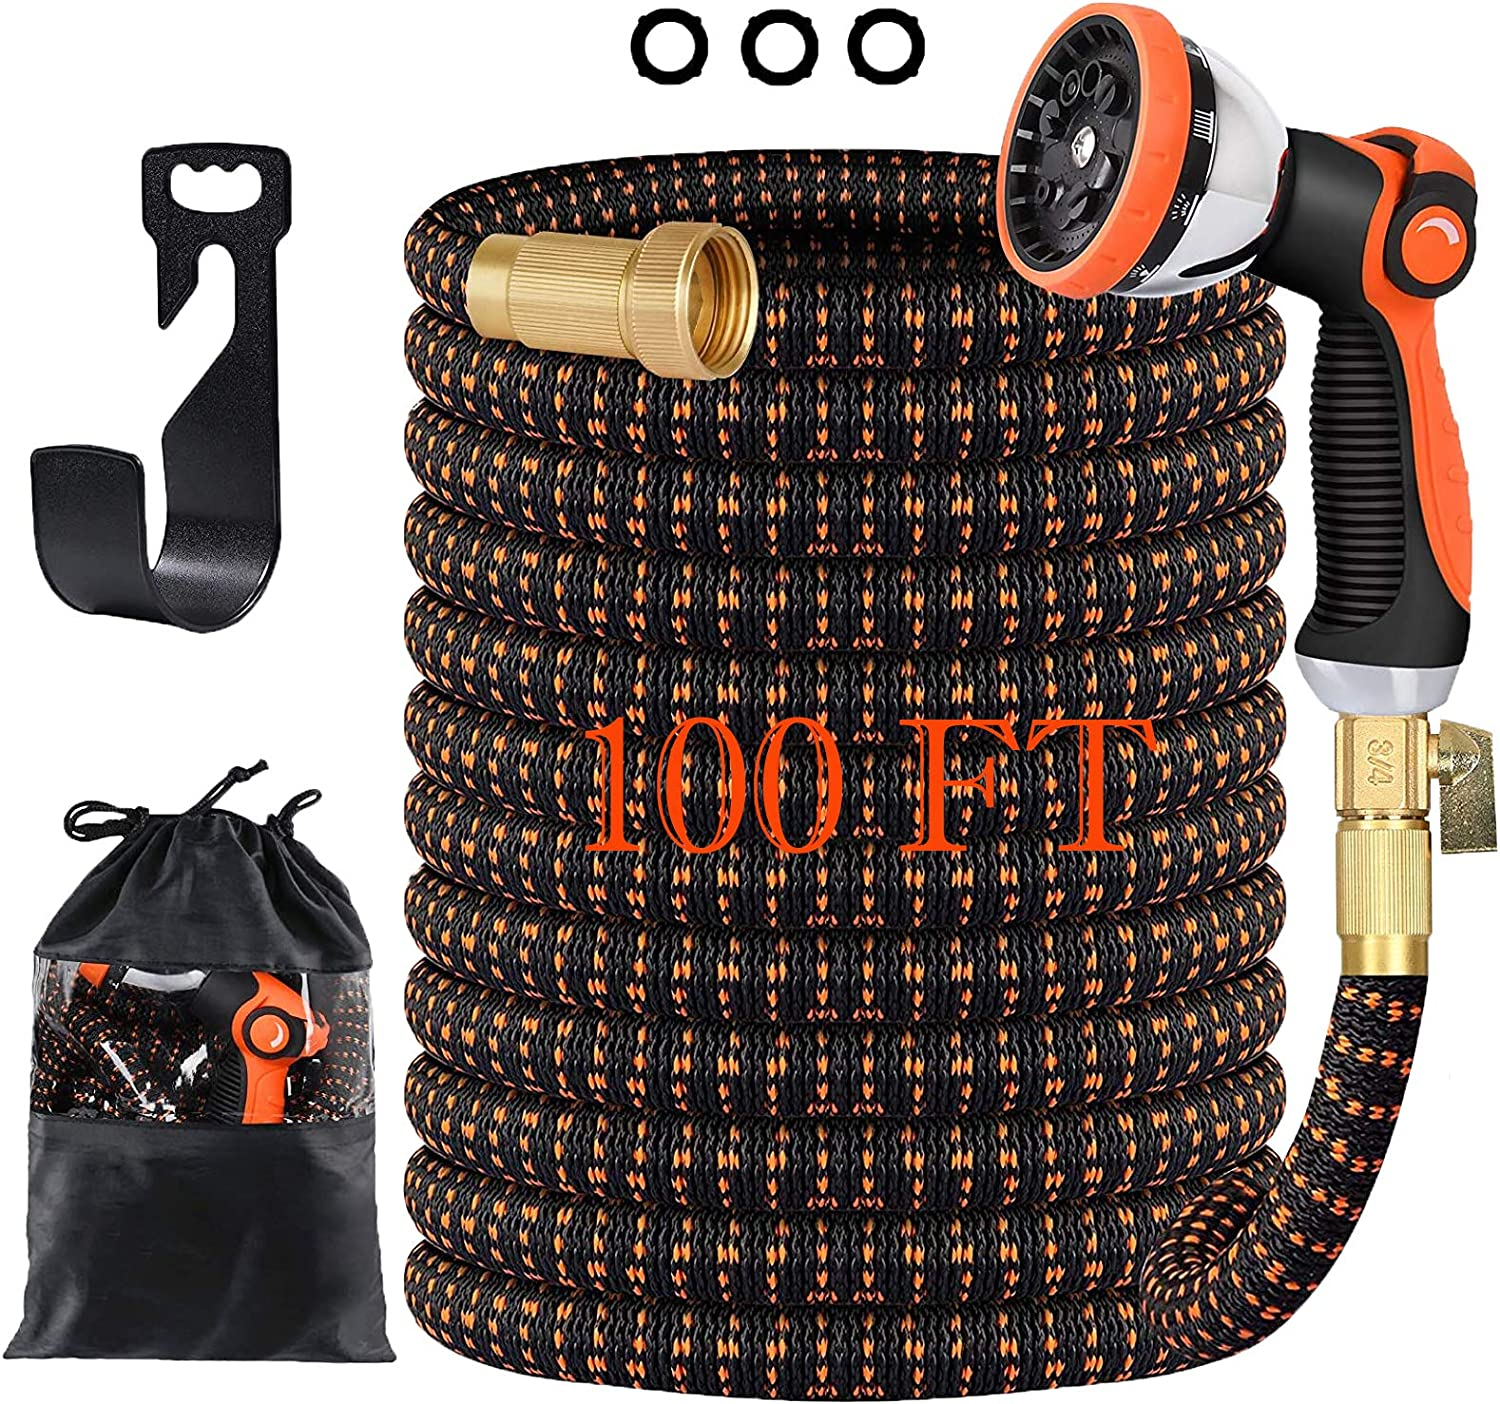 100FT Garden Hose, All New Expandable Water Hose with 10 Function Sprayer Nozzle, 3-Layer Latex Tube 3/4